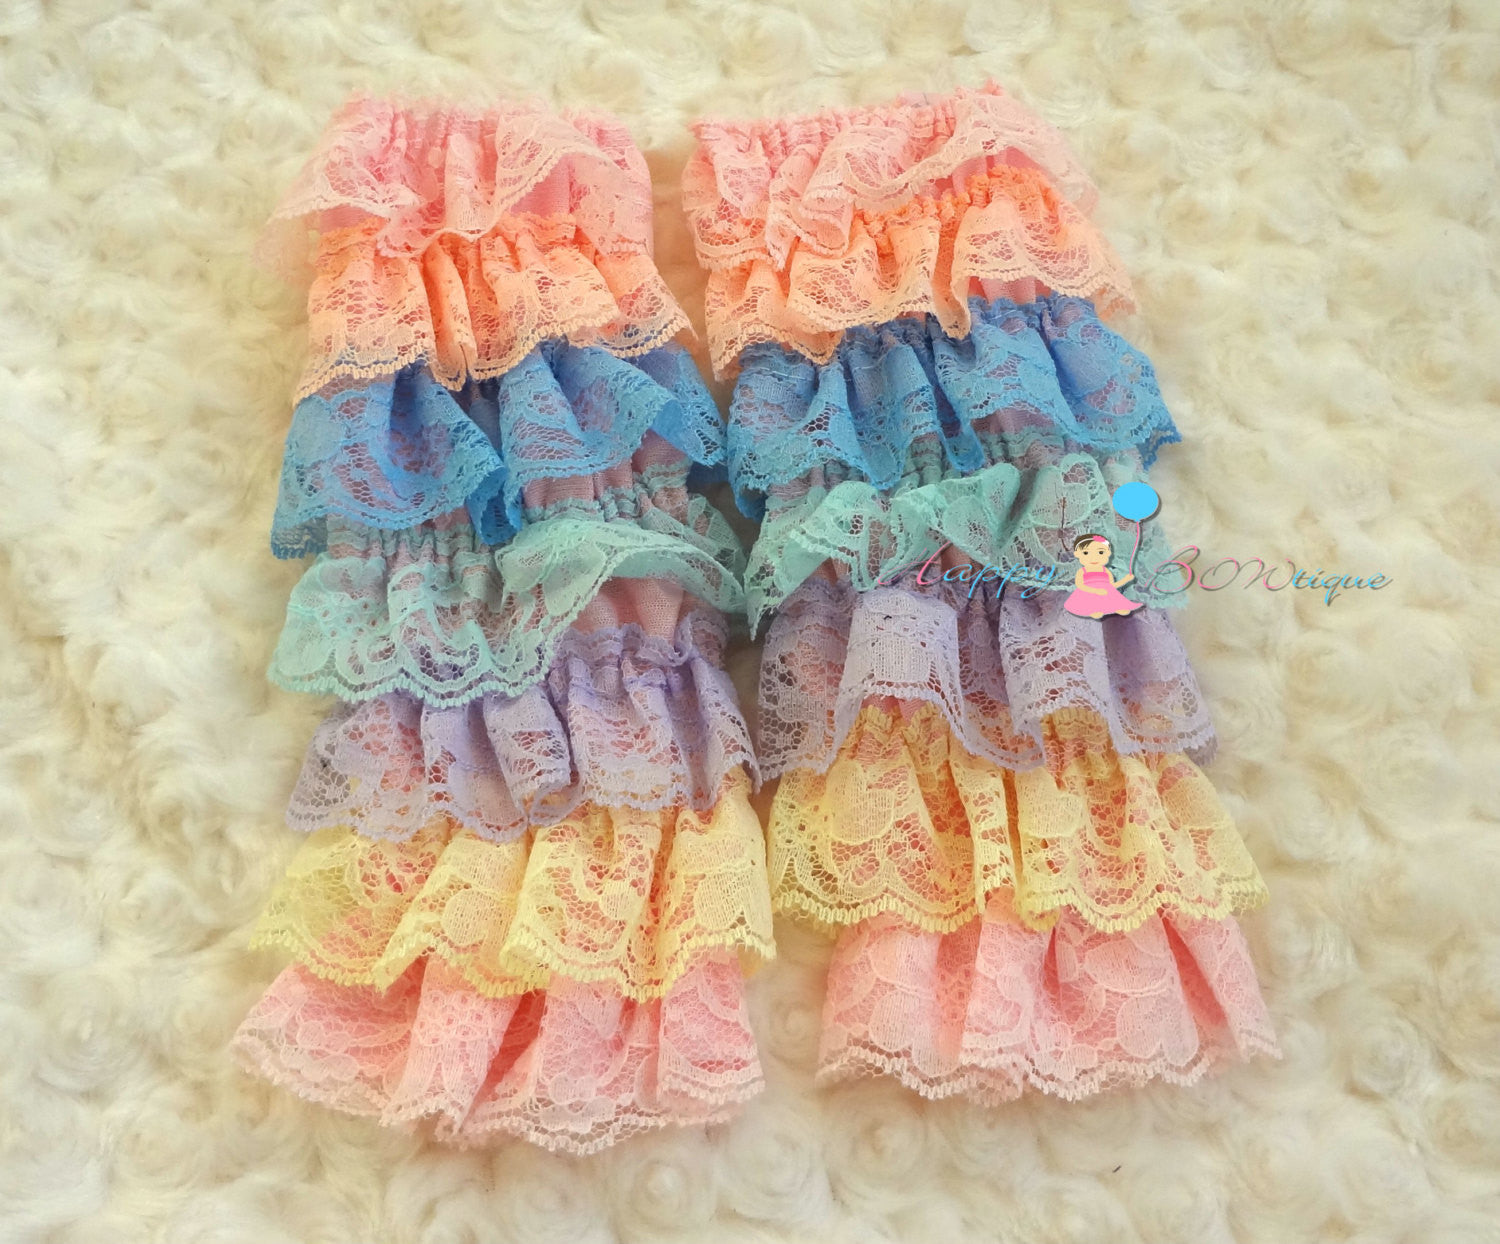 Satin Vintage Roses Petti Lace Leg Warmers - Happy BOWtique - children's clothing, Baby Girl clothing